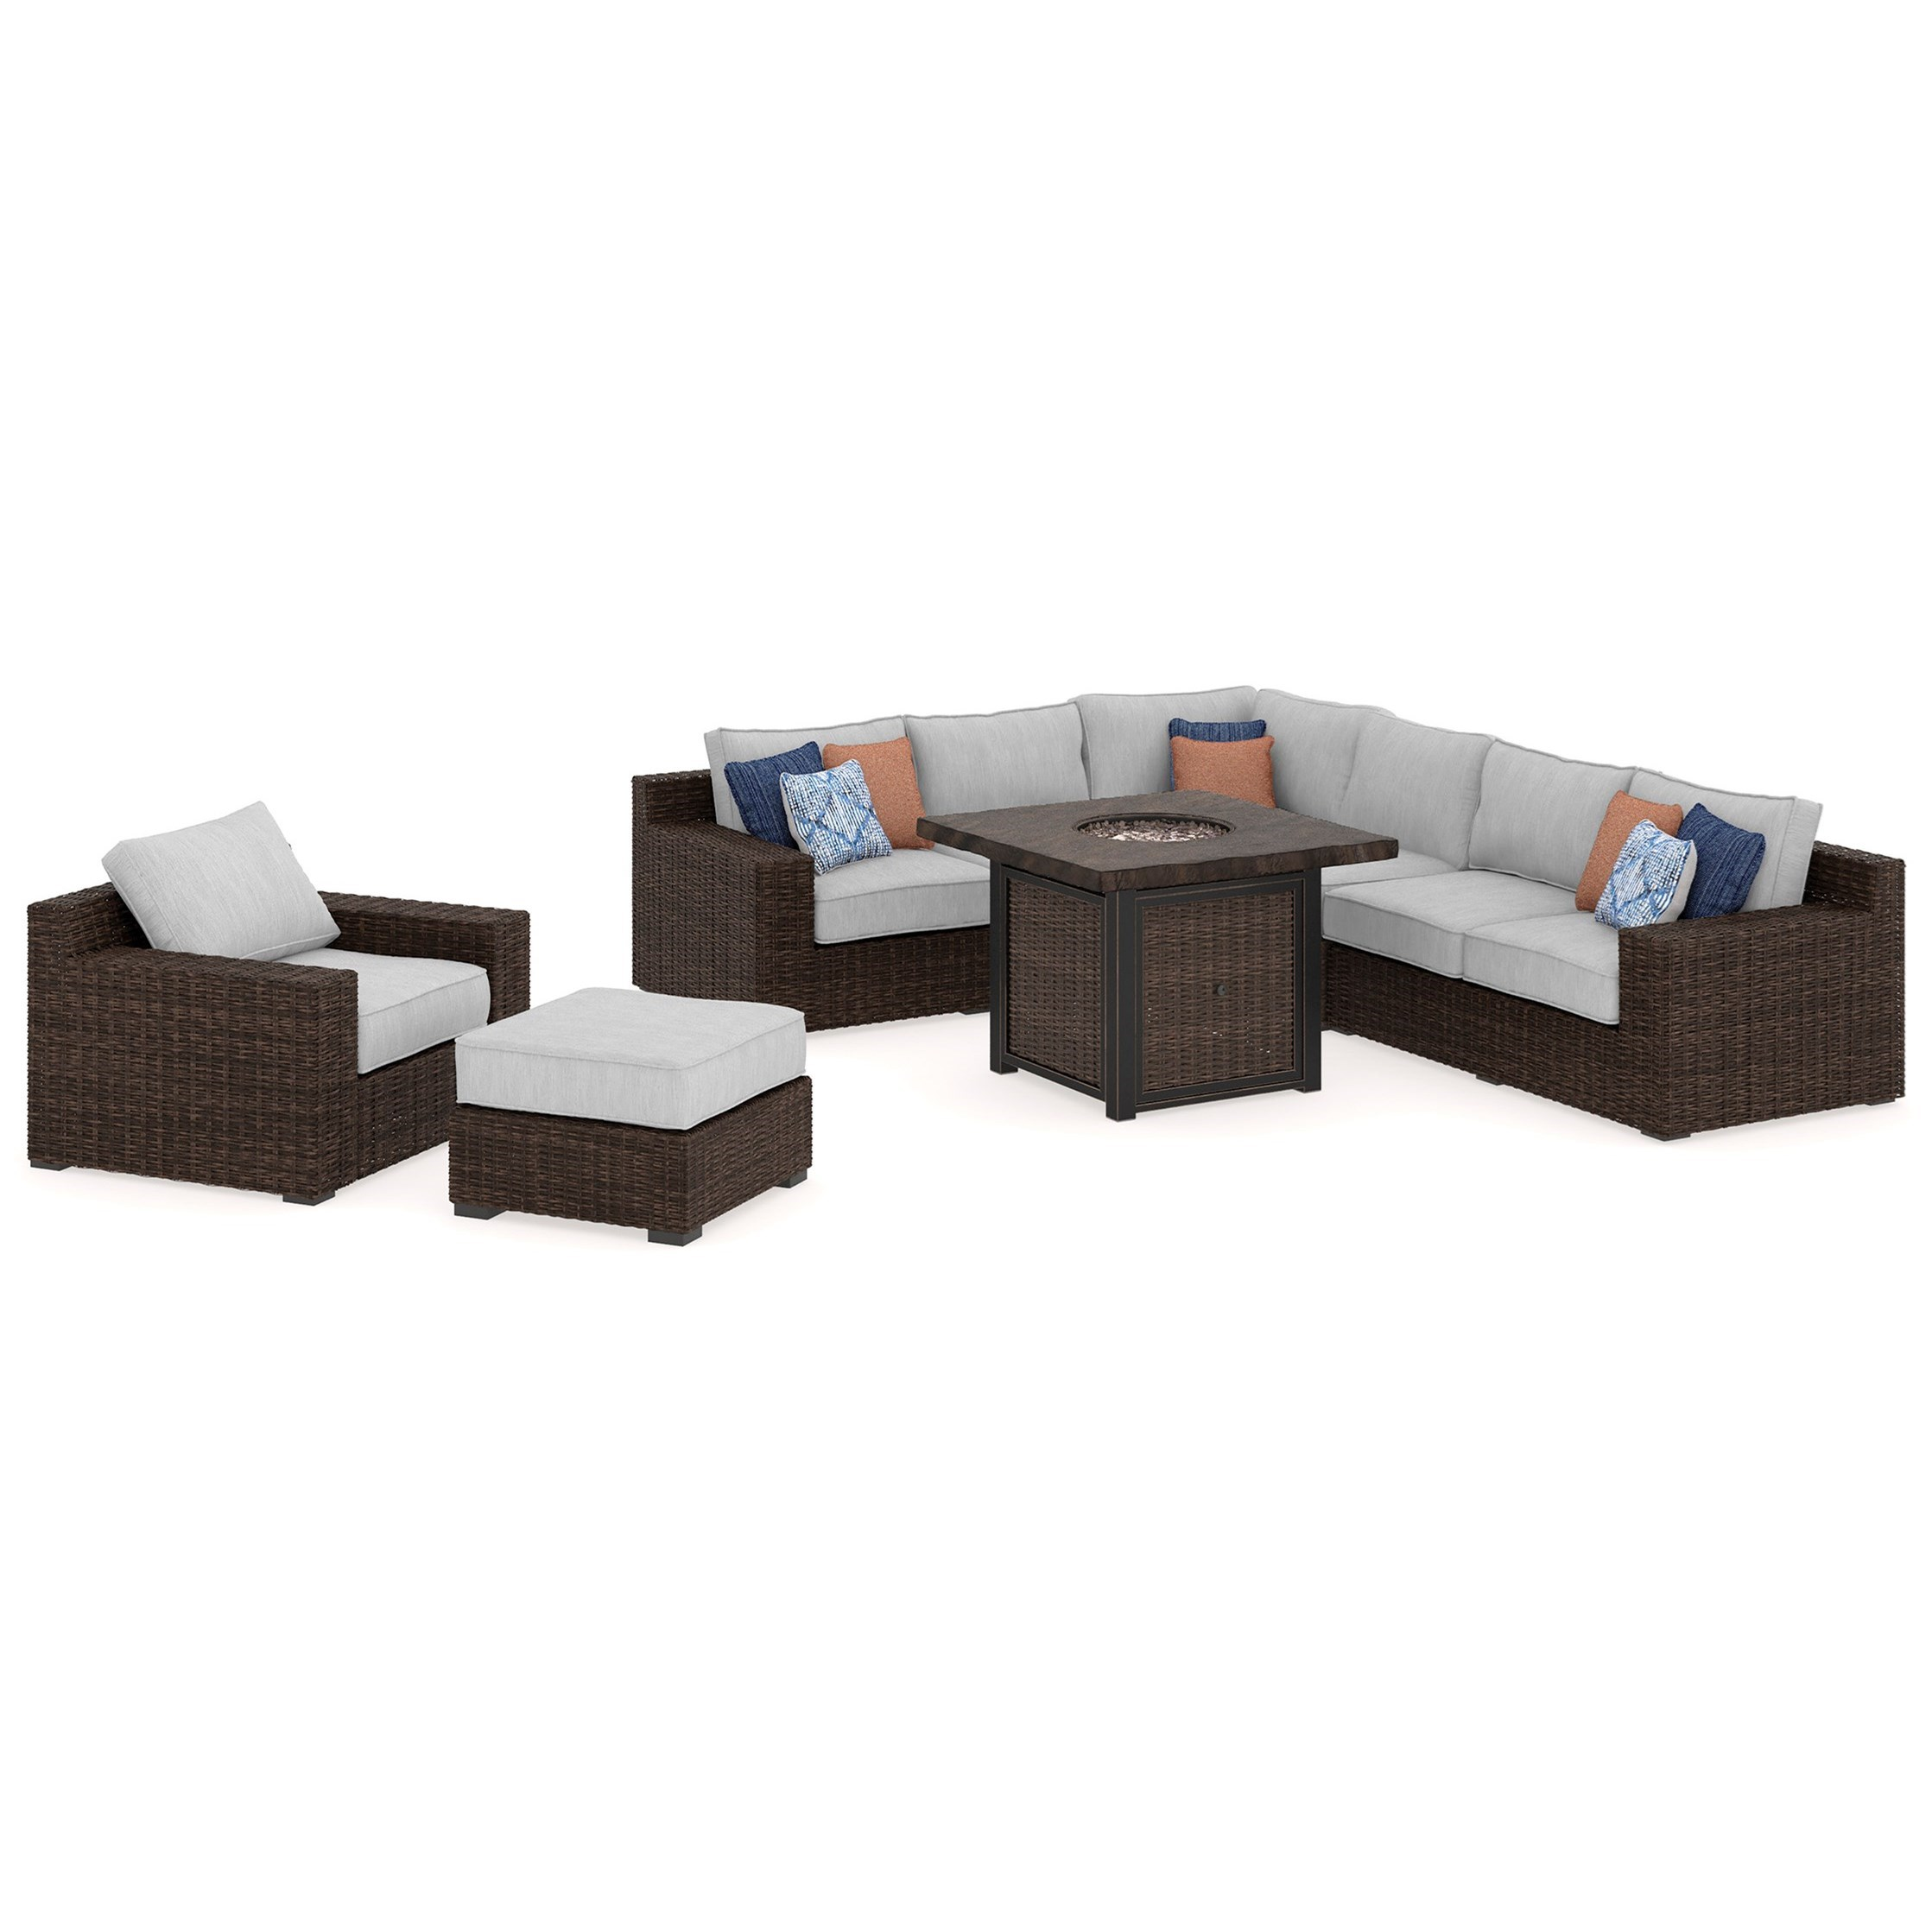 Alta Grande Outdoor Conversation Set by Signature Design at Fisher Home Furnishings